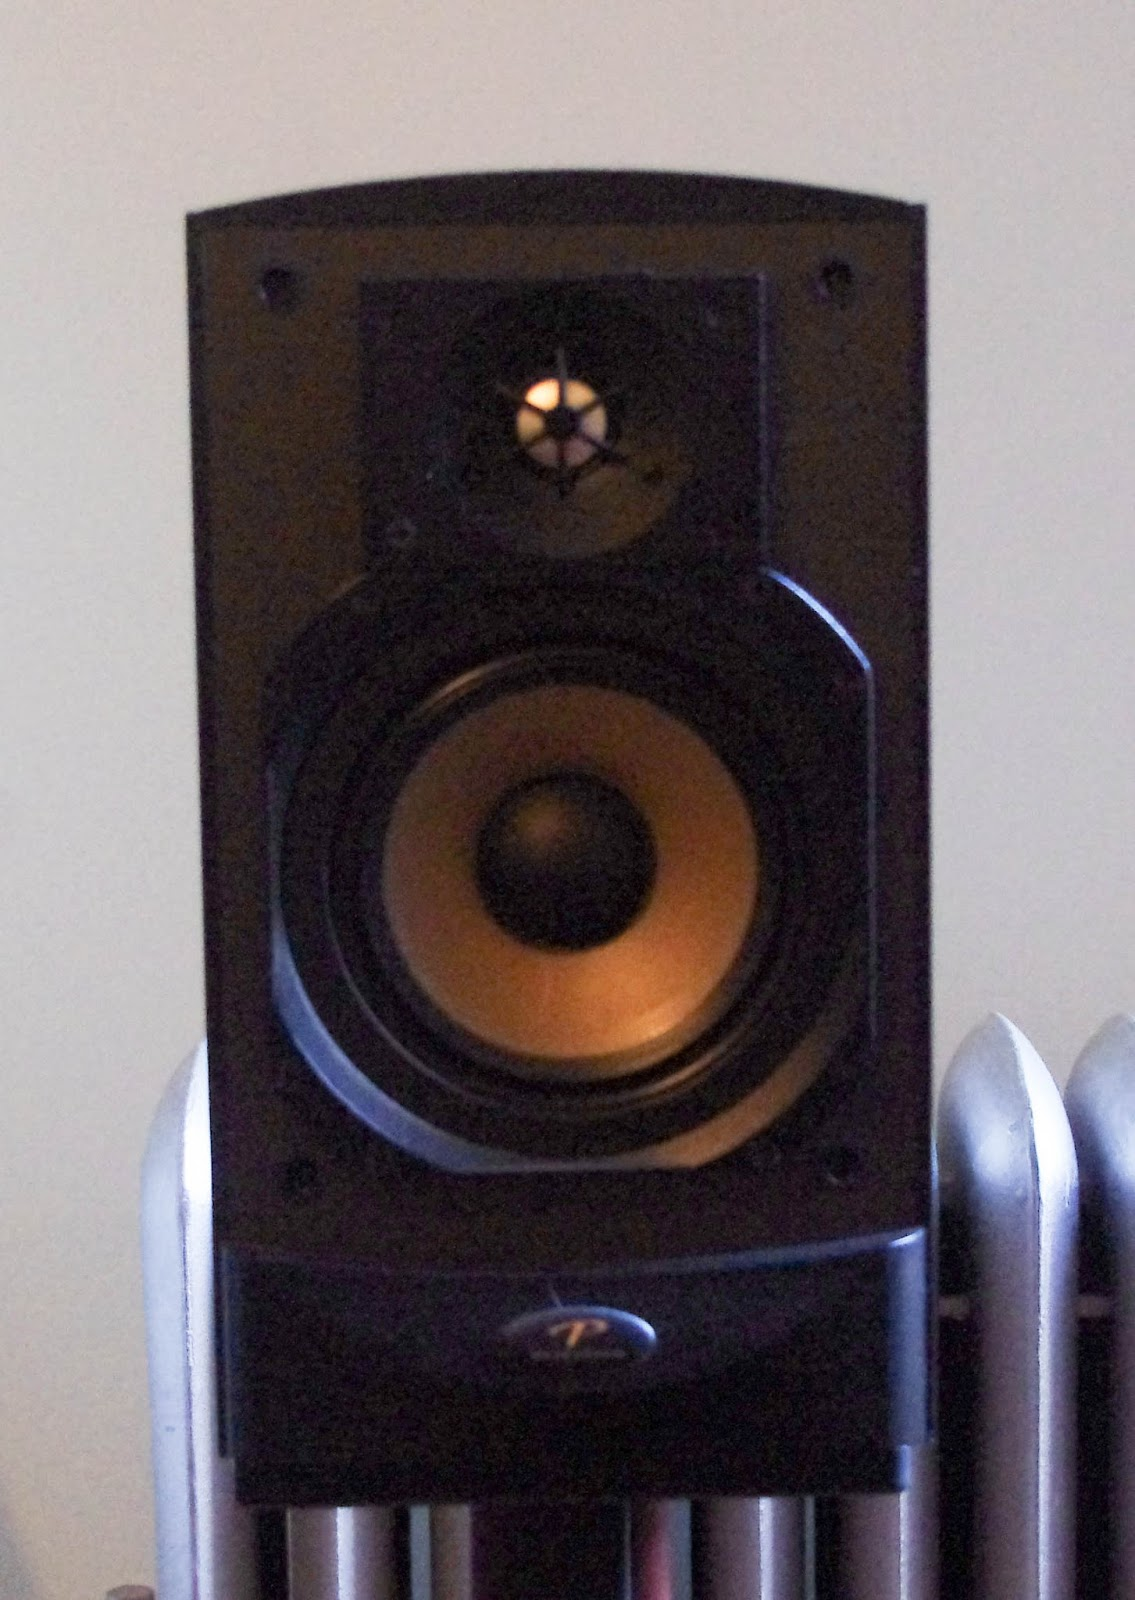 MSV: All time classic Paradigm Reference Studio 20 monitor